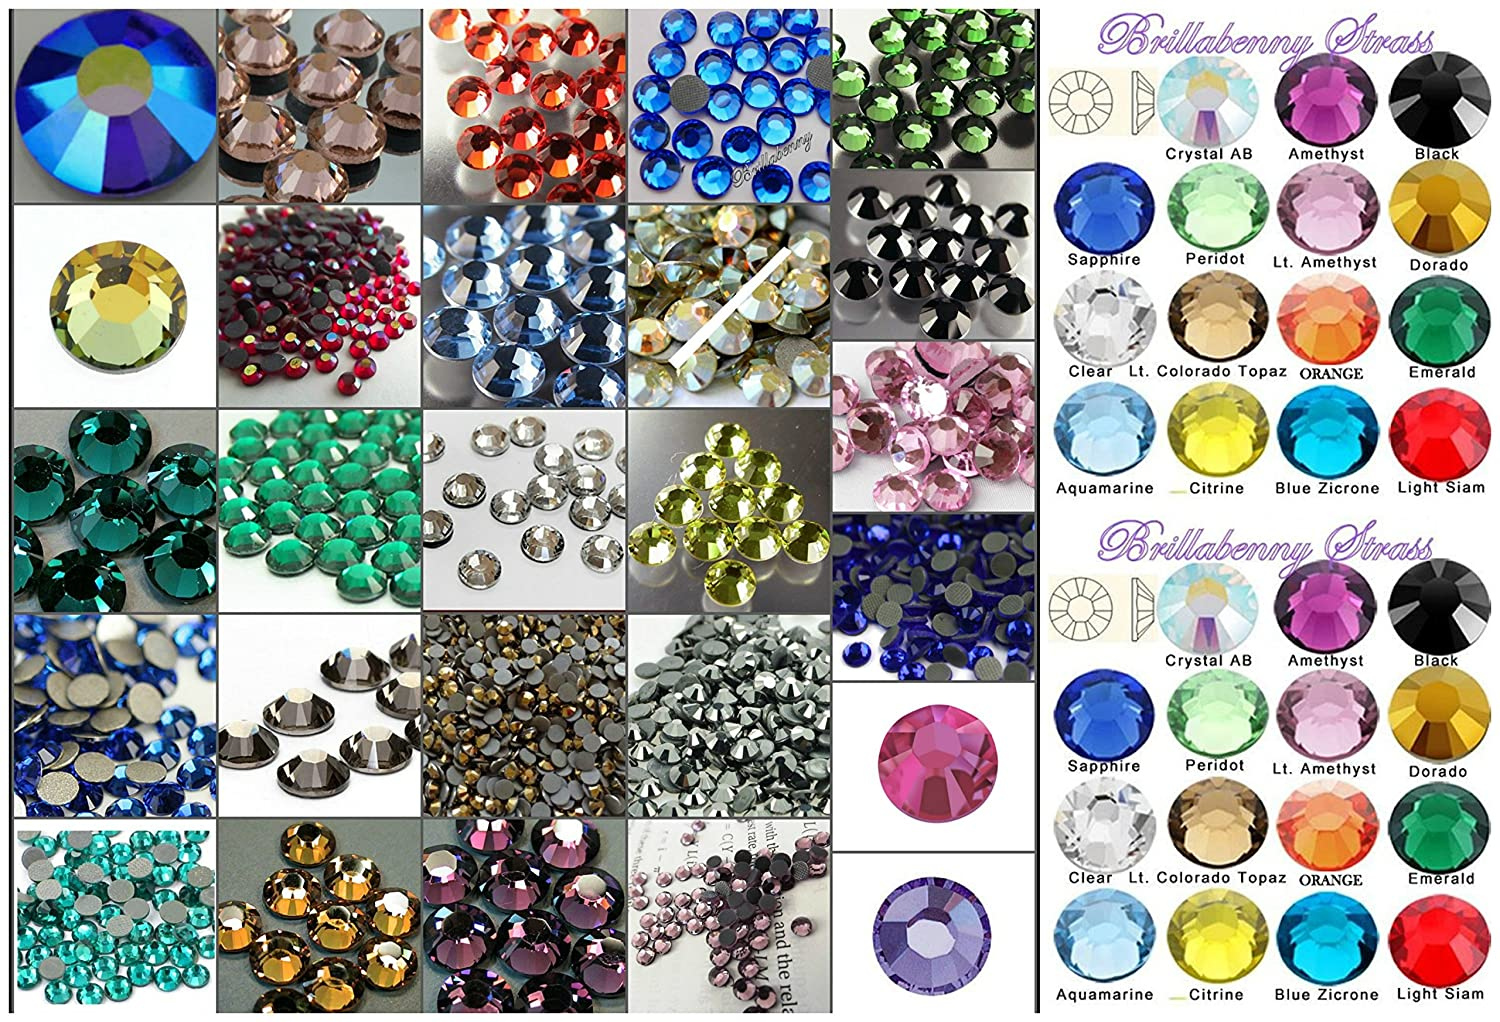 BrillaBenny 1000 Strass TERMOADESIVI HOTFIX SS20 5MM Color Mix Tutti Colori Misti Prima qualità Koreana per Tessuti e Decori Rhinestone Glass Mixed Iron On Flatback Hot Fix 1000COLORMIX5MM